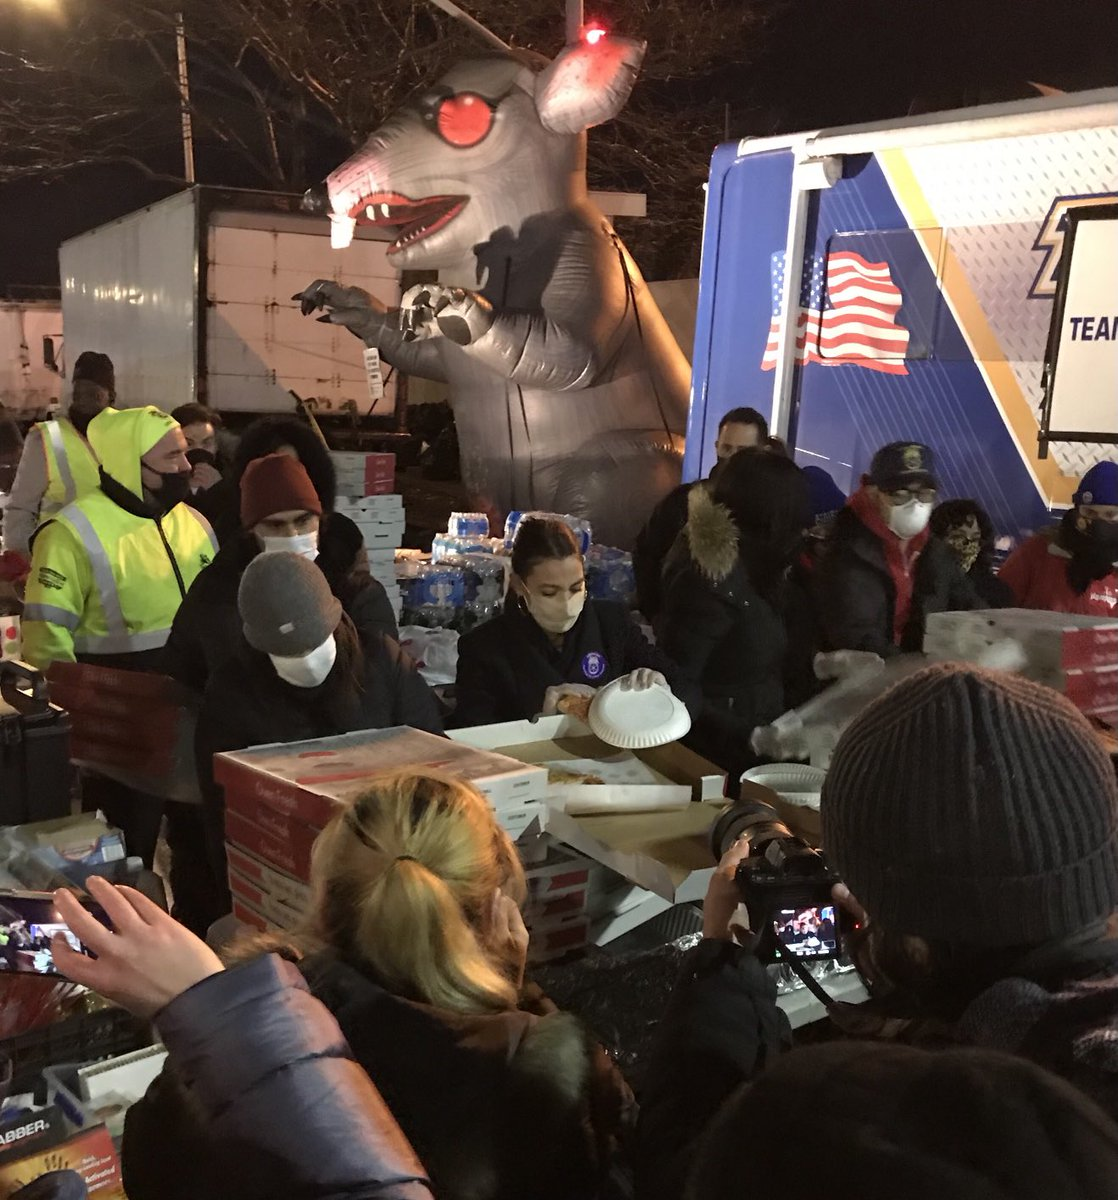 Replying to @sicknerpe: Oh hey it's @AOC serving pizza in front of Scabby!